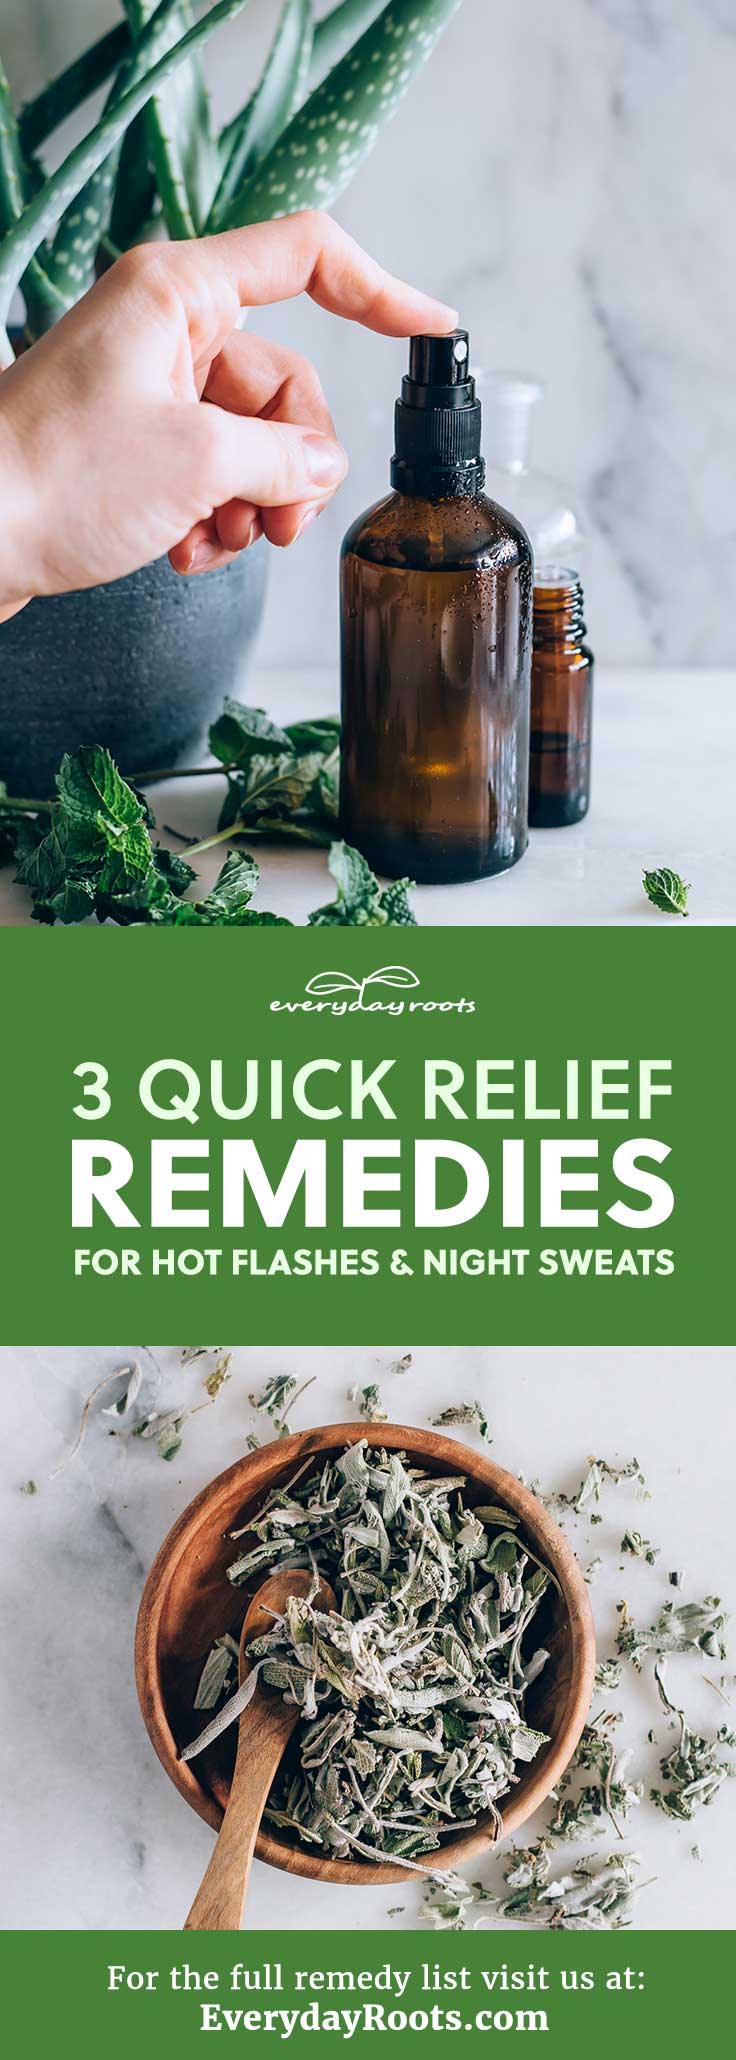 Here are 3 easy remedies for hot flashes and night sweats, including- a diy peppermint spray and eucalyptus cold compress.